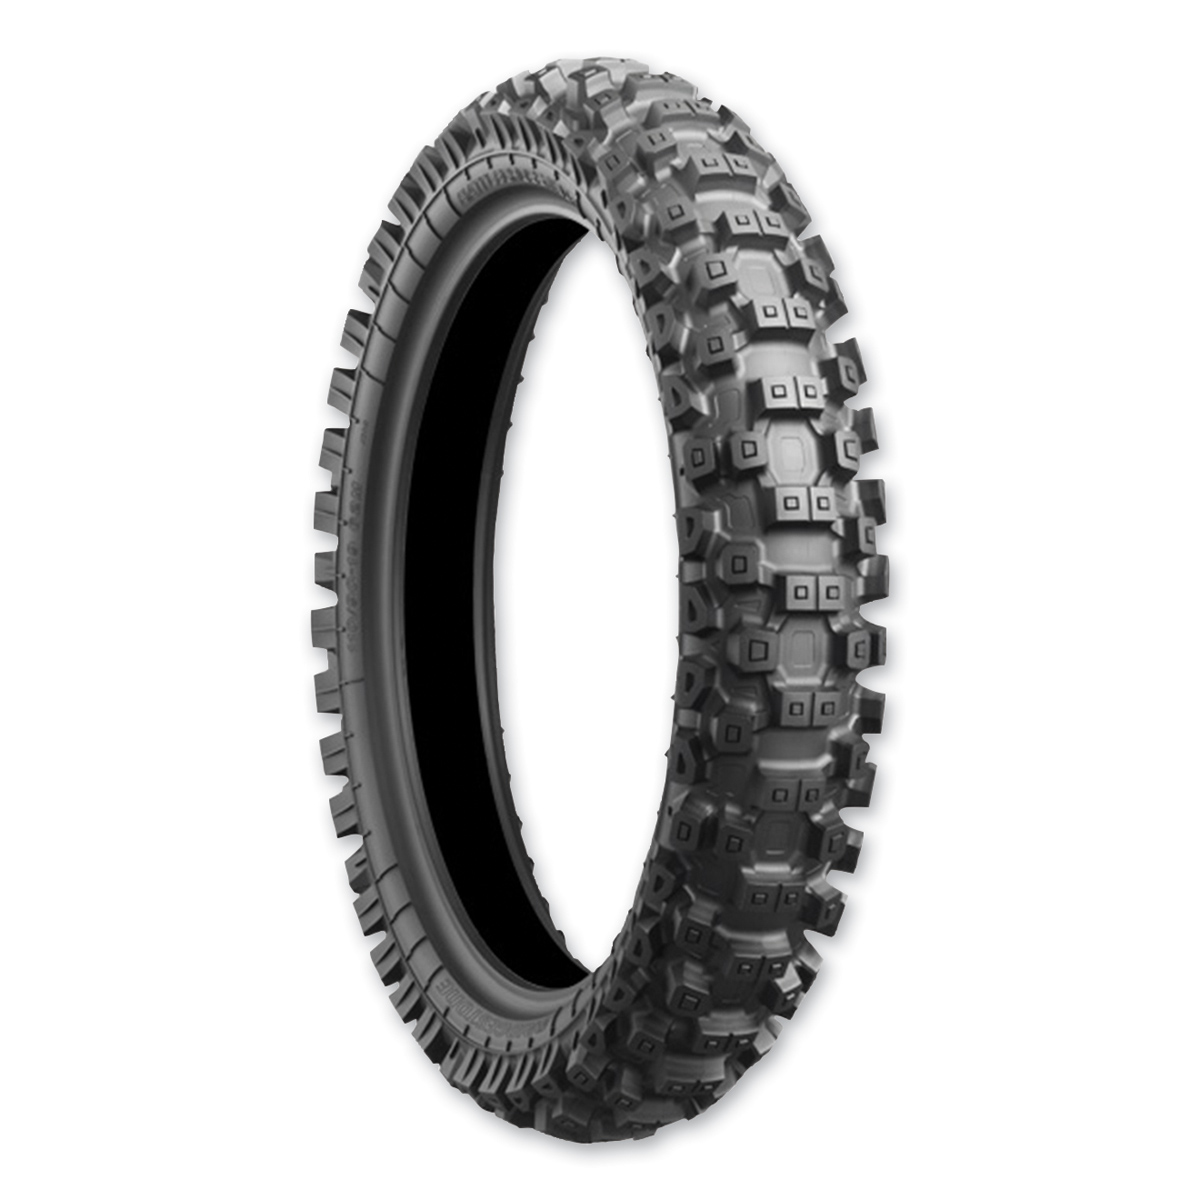 Bridgestone Battlecross X30R 100/100-18 Tire